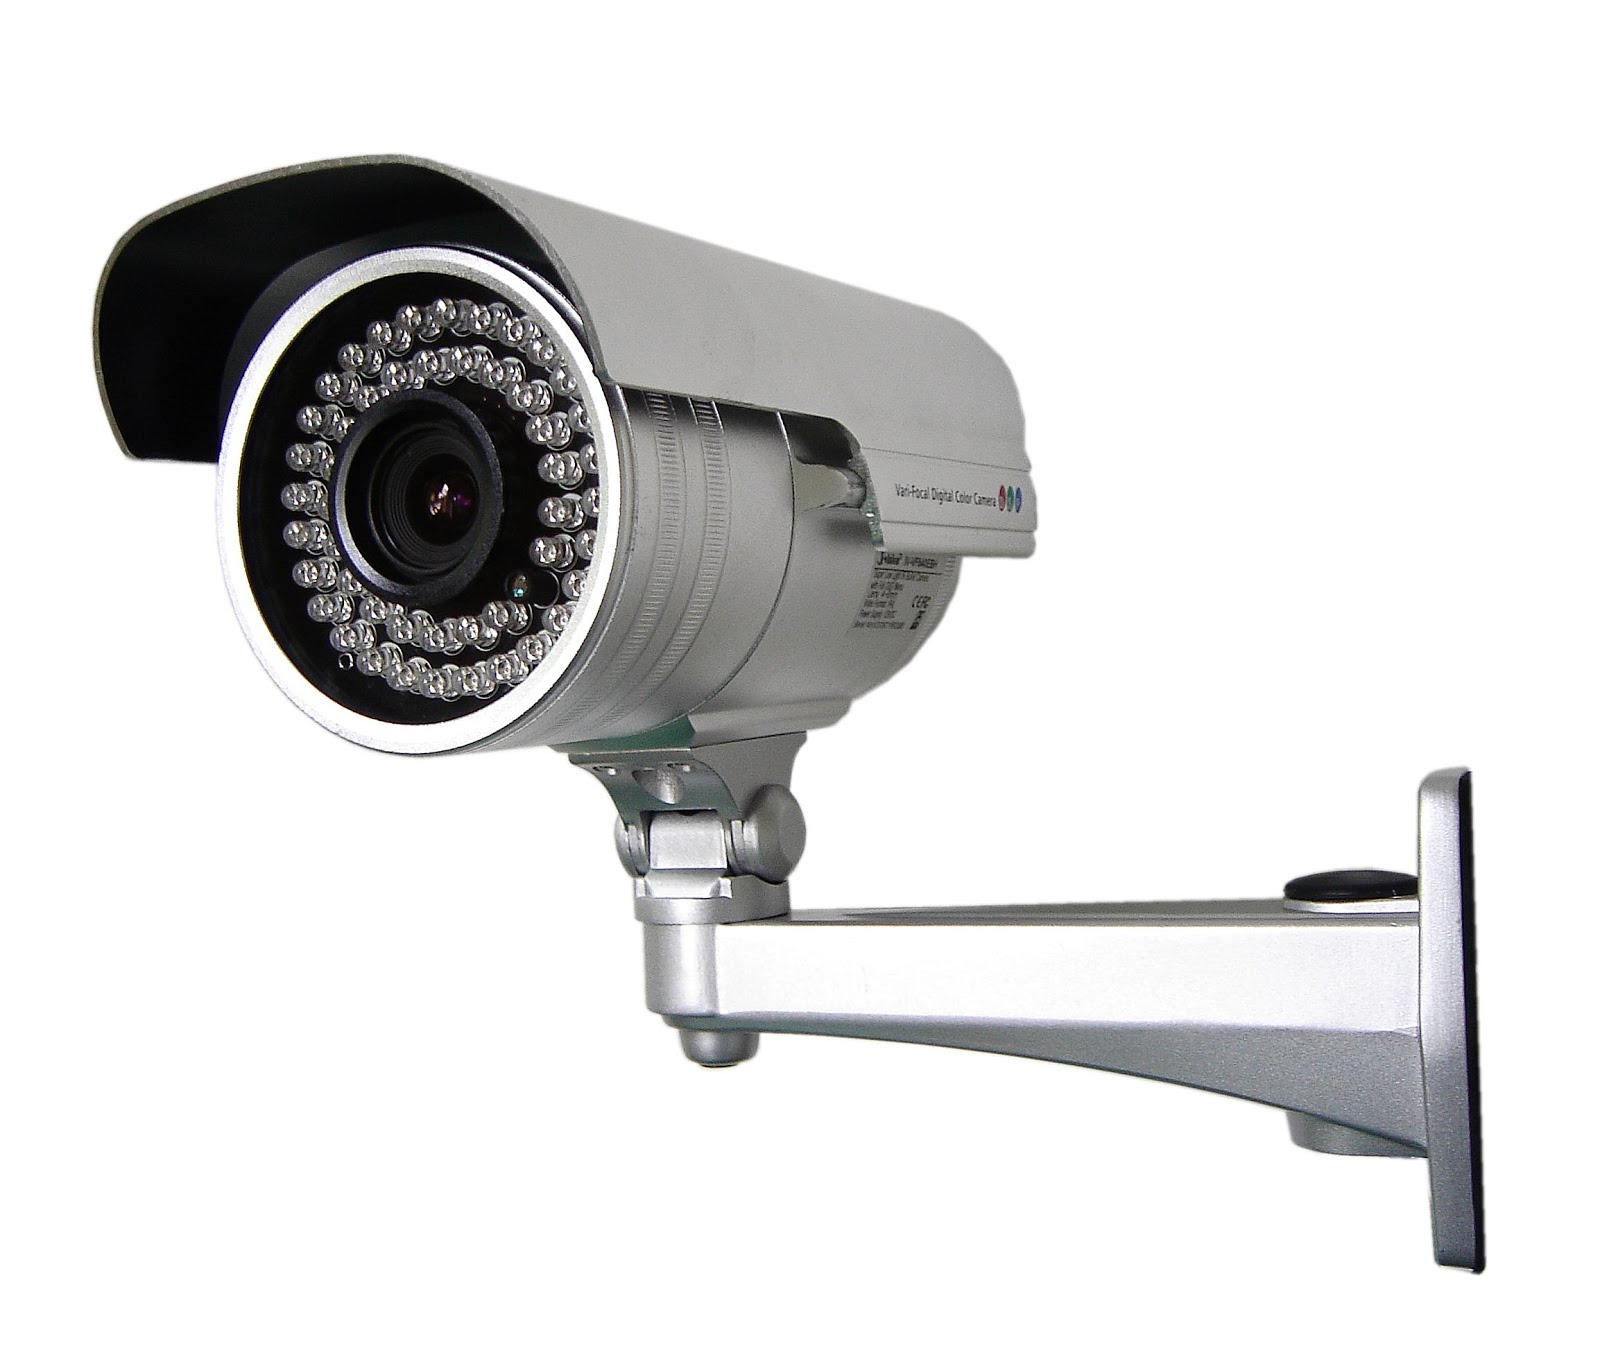 RPD Security Camera Registration